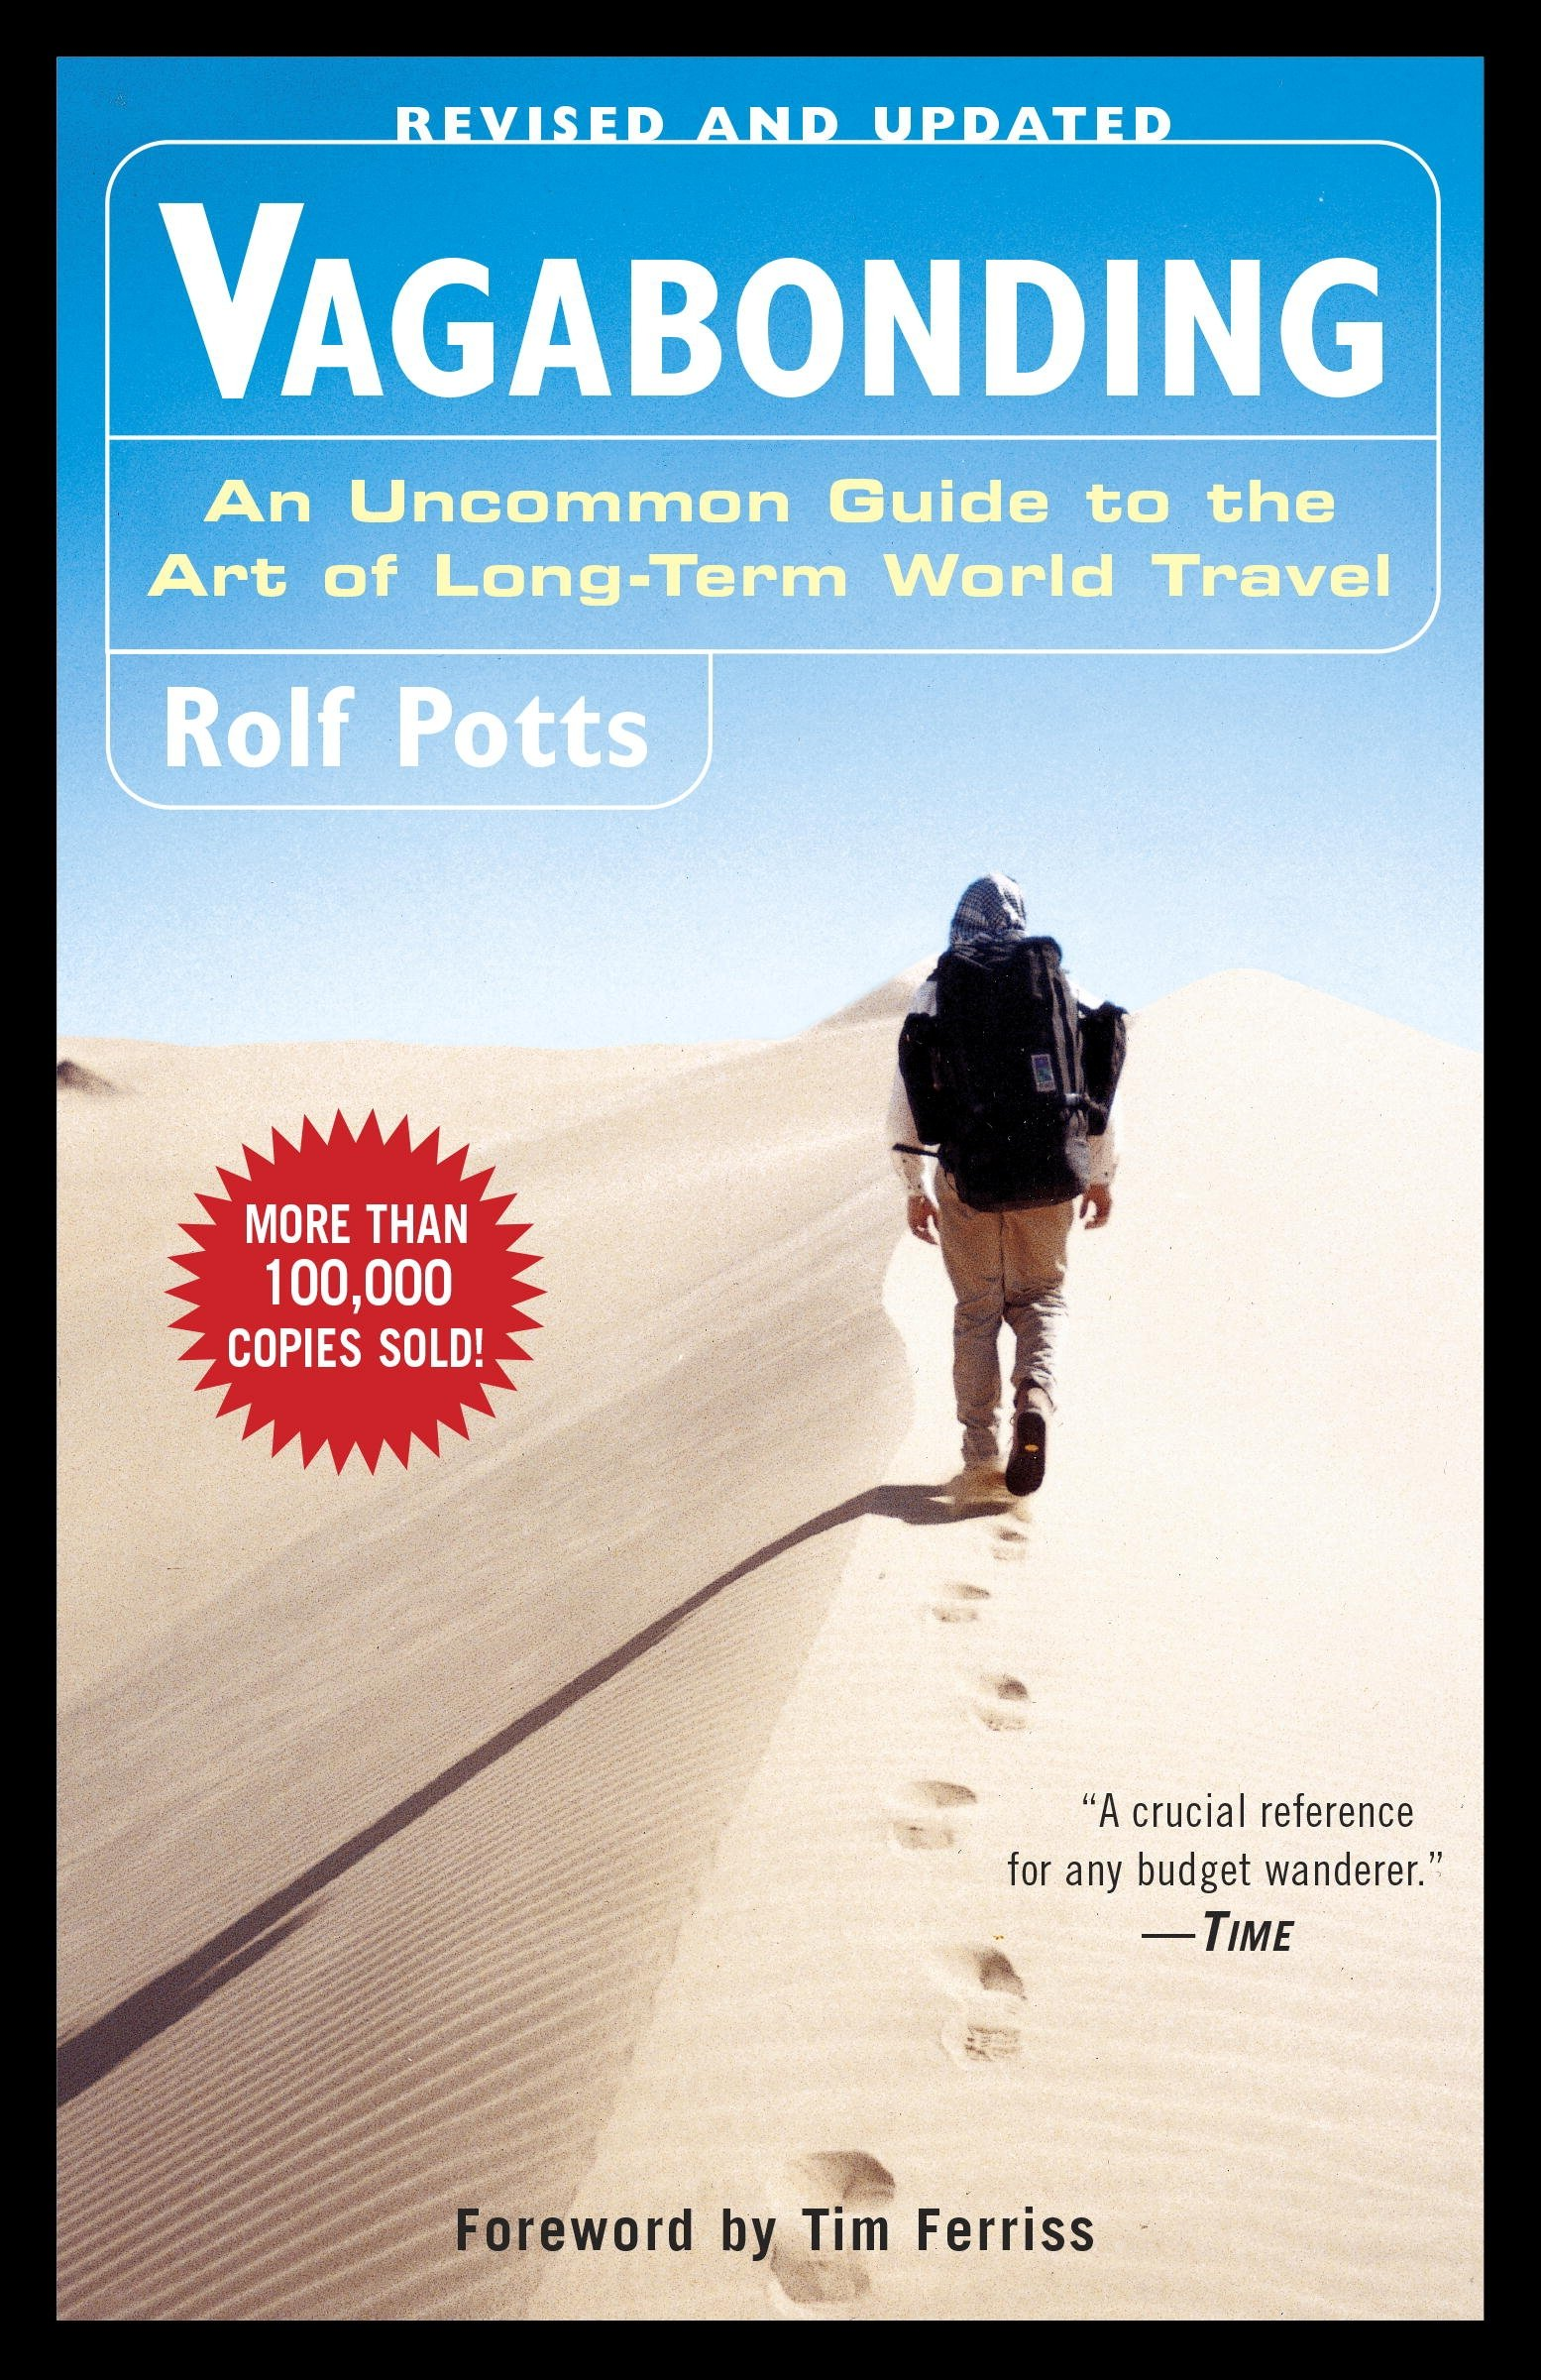 Vagabonding – An Uncommon Guide to the Art of Long Term World Travel by Rolf Potts